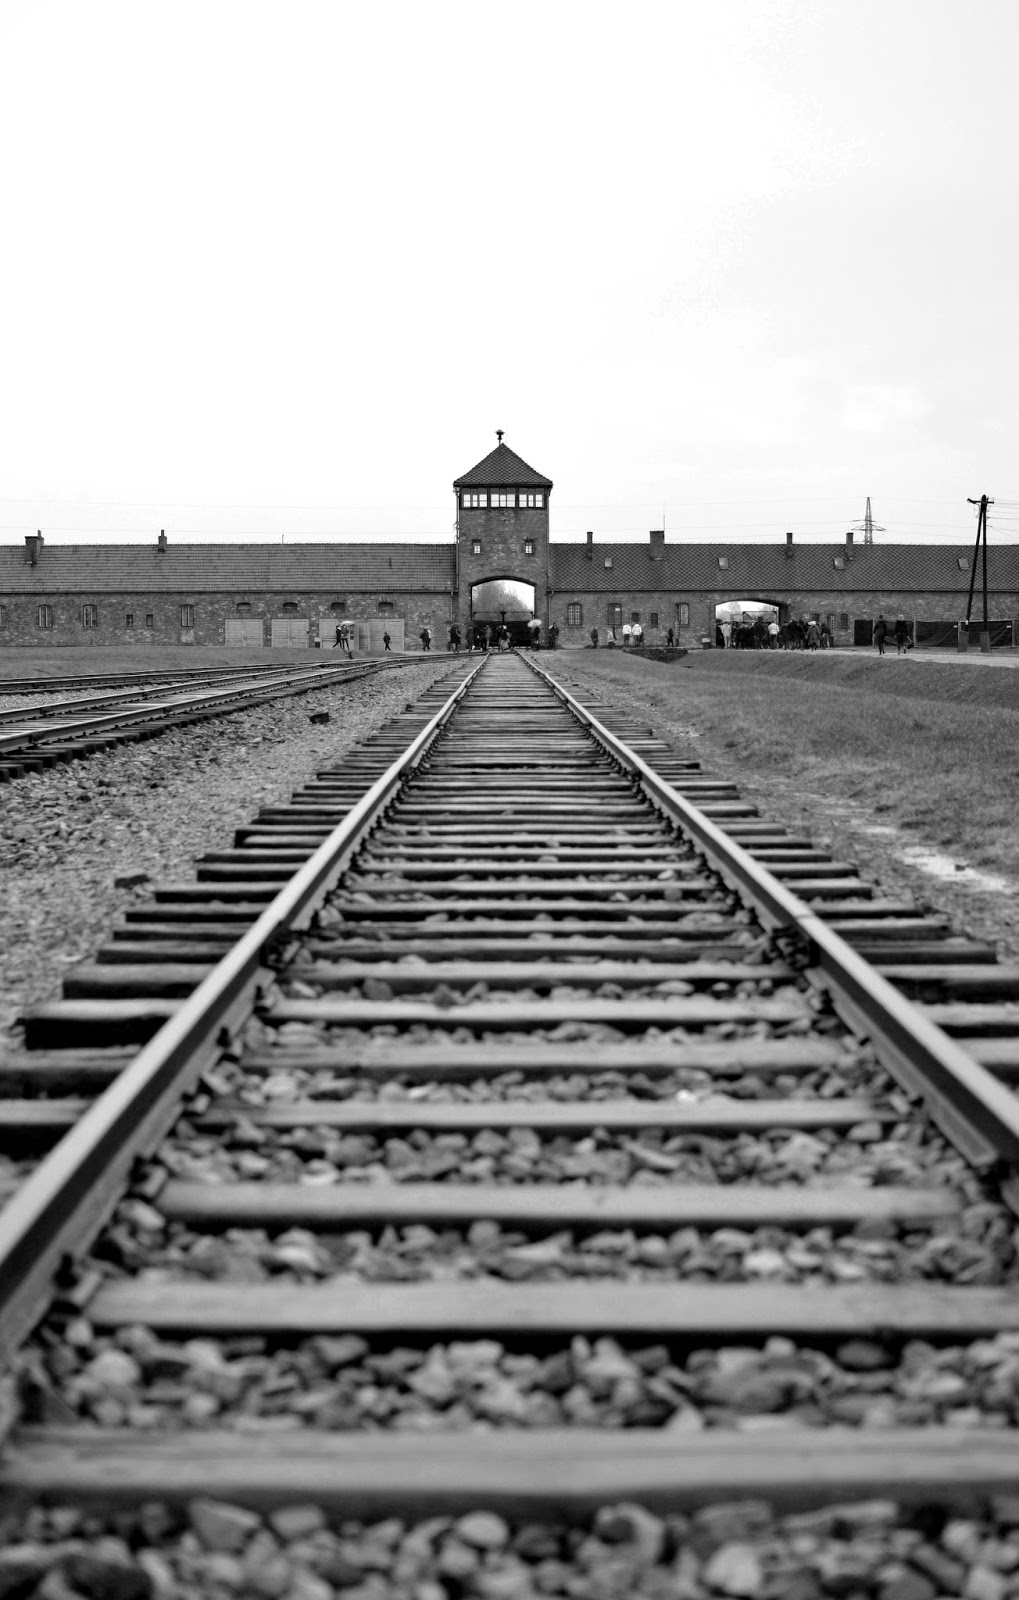 Auschwitz, Birkenau, train, black and white, schindlers list, nazi, concentration camp, photography, eastern Europe